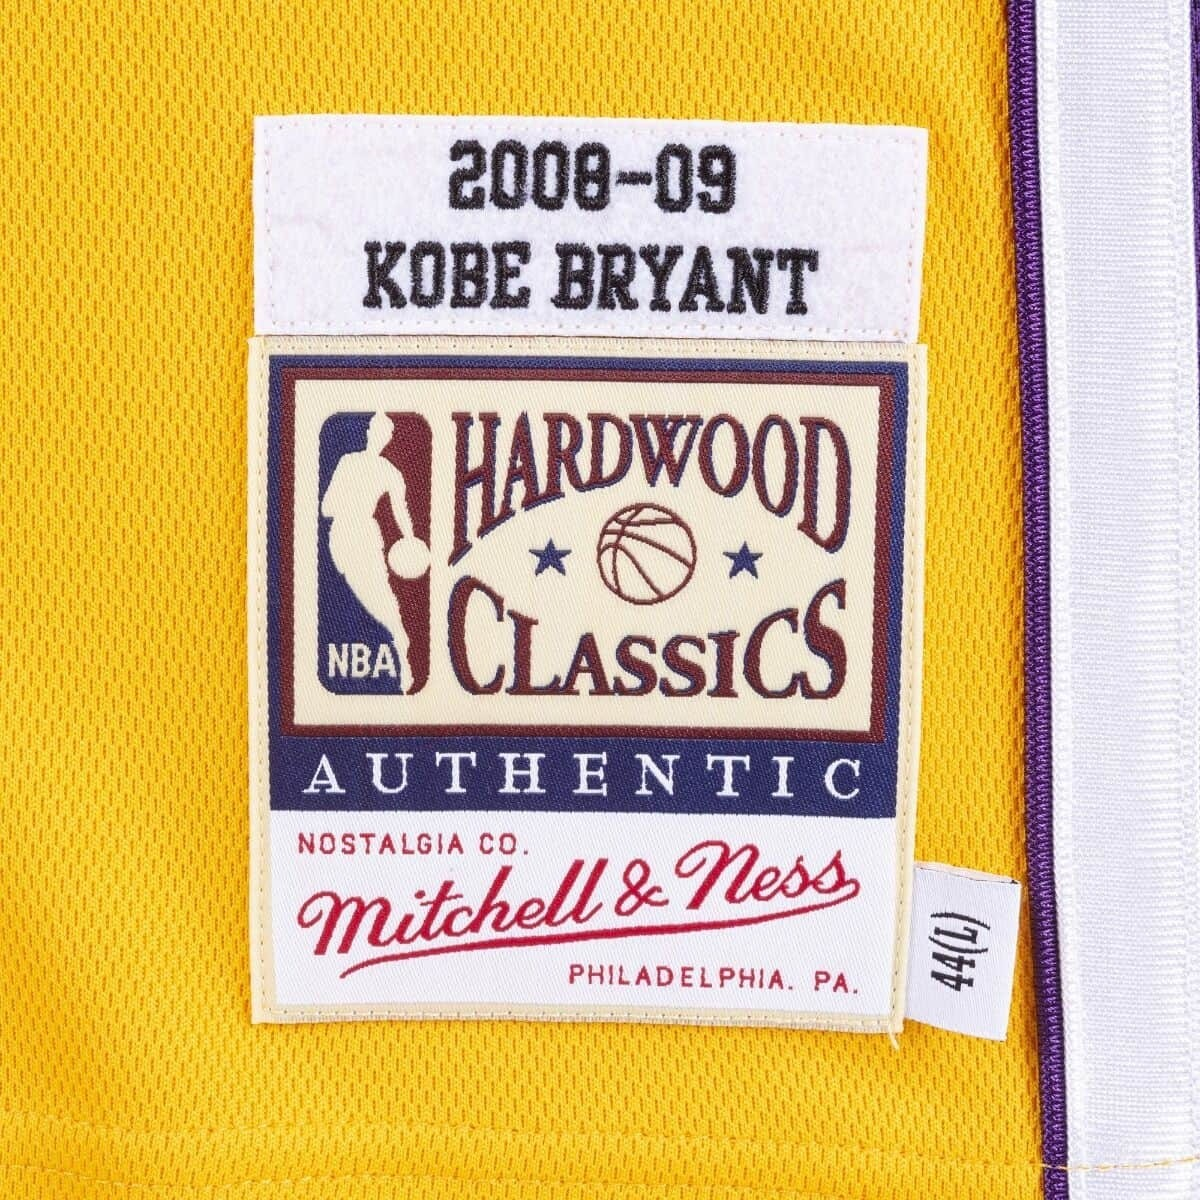 Mitchell & Ness Authentic Jersey L.A. Lakers Home Kobe Bryant '2008-09' AJY4CP19009